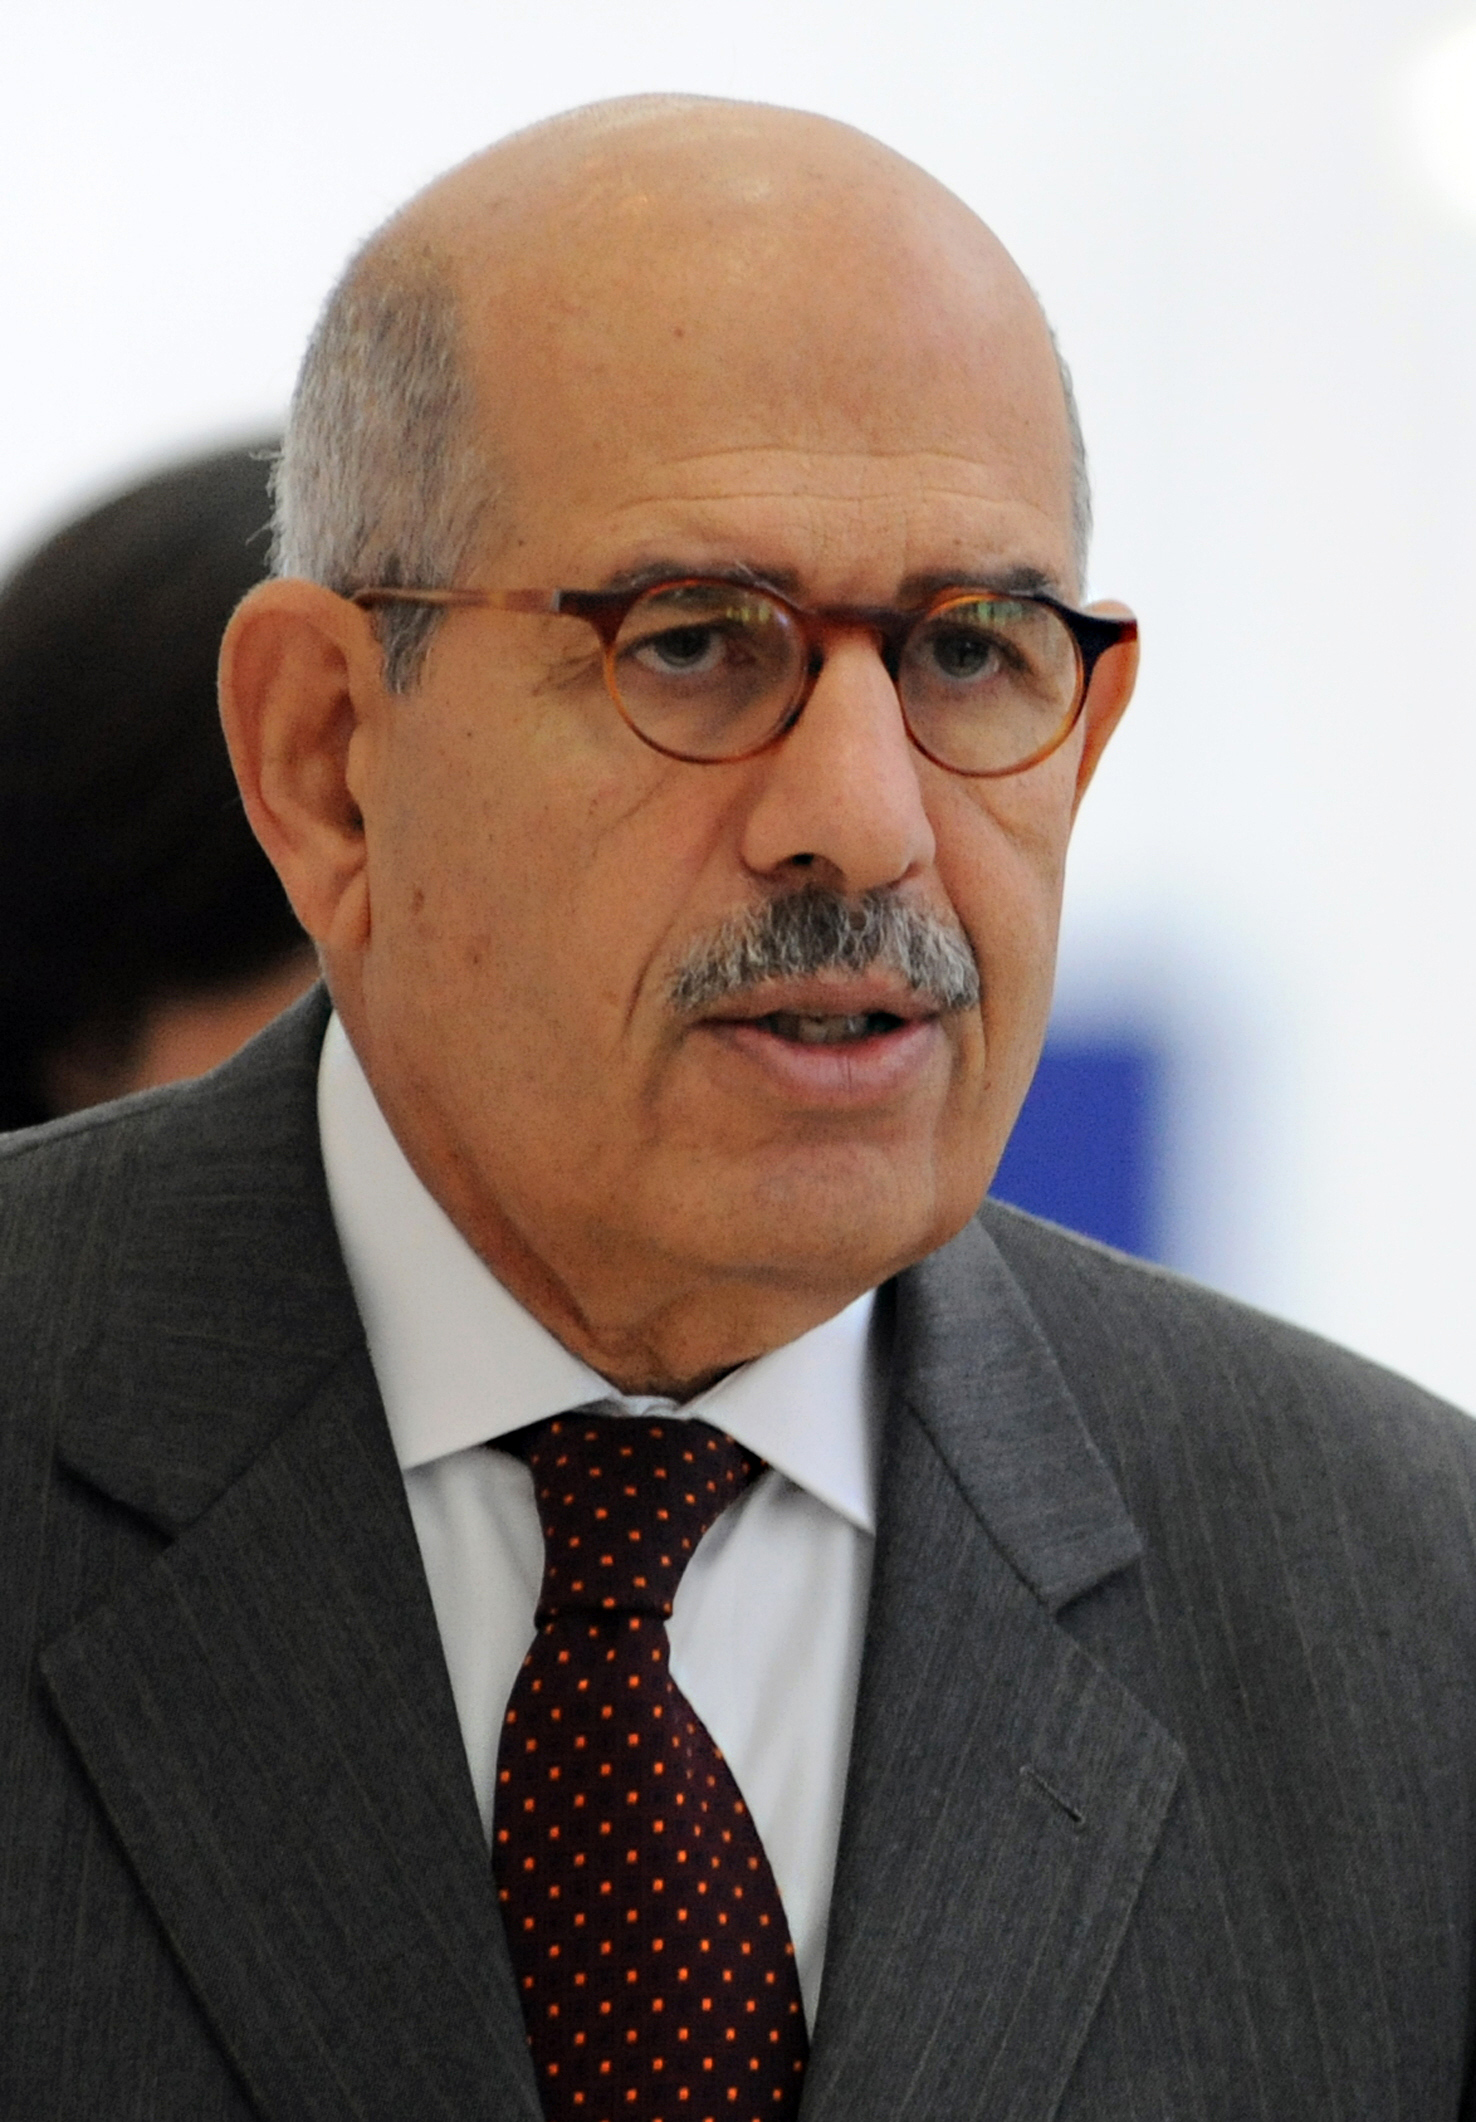 Mohamed ElBaradei, Vice President for International Relations, said that all peaceful means should be used first in dispersing sit-ins in support of former President Mohamed Morsi before resorting to force (AFP/ file photo)